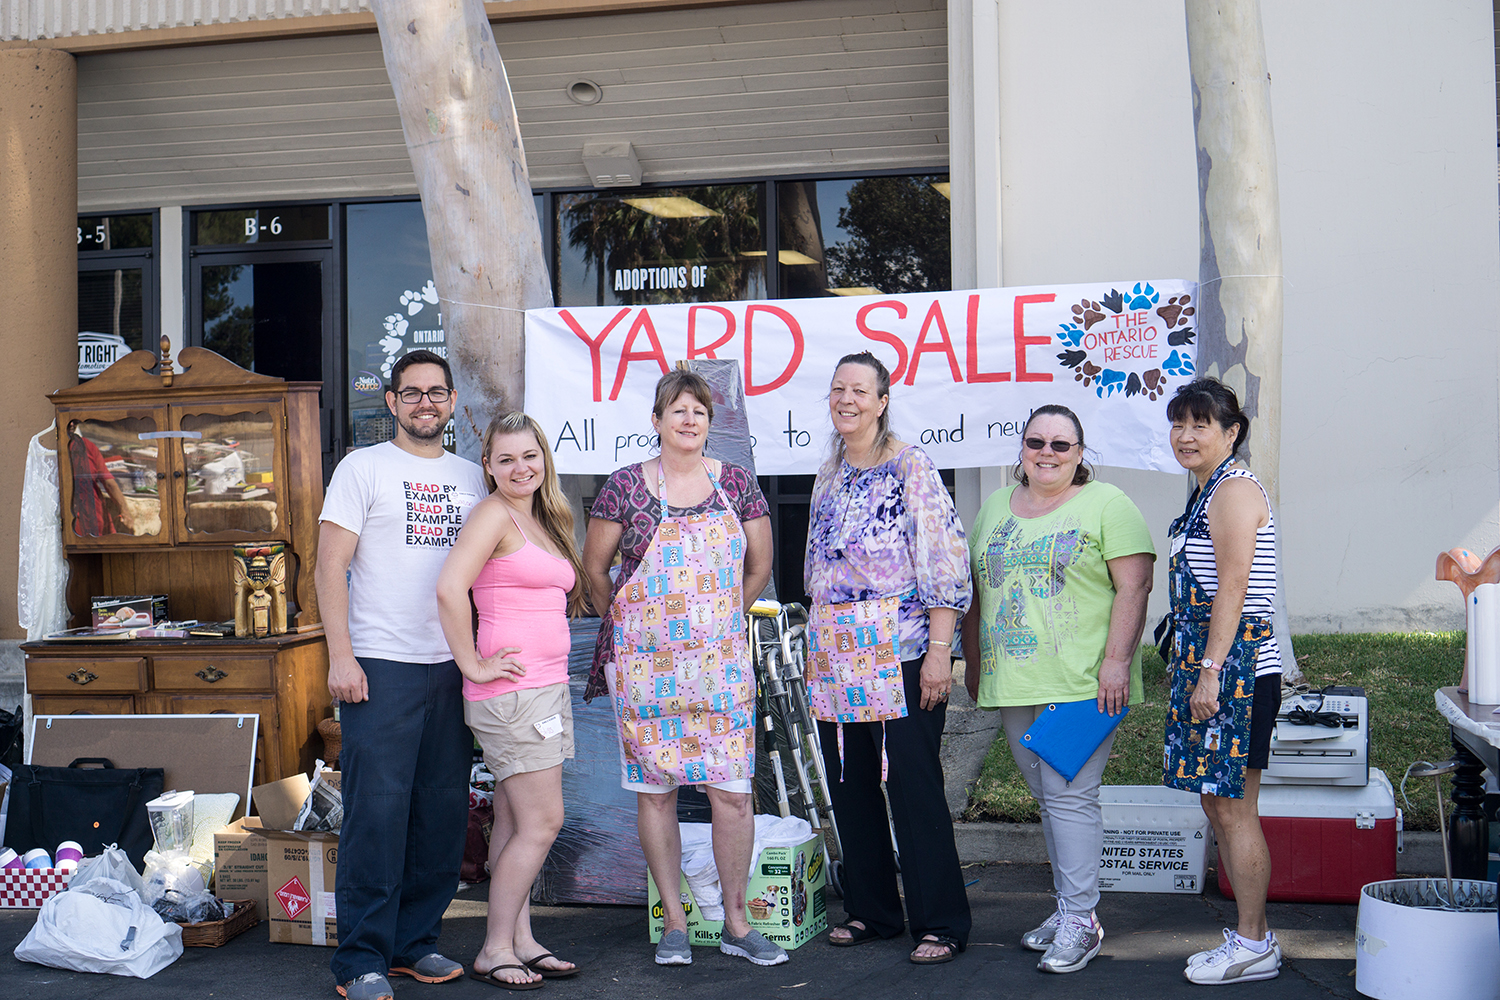 The Ontario Yard Sale - July 2015